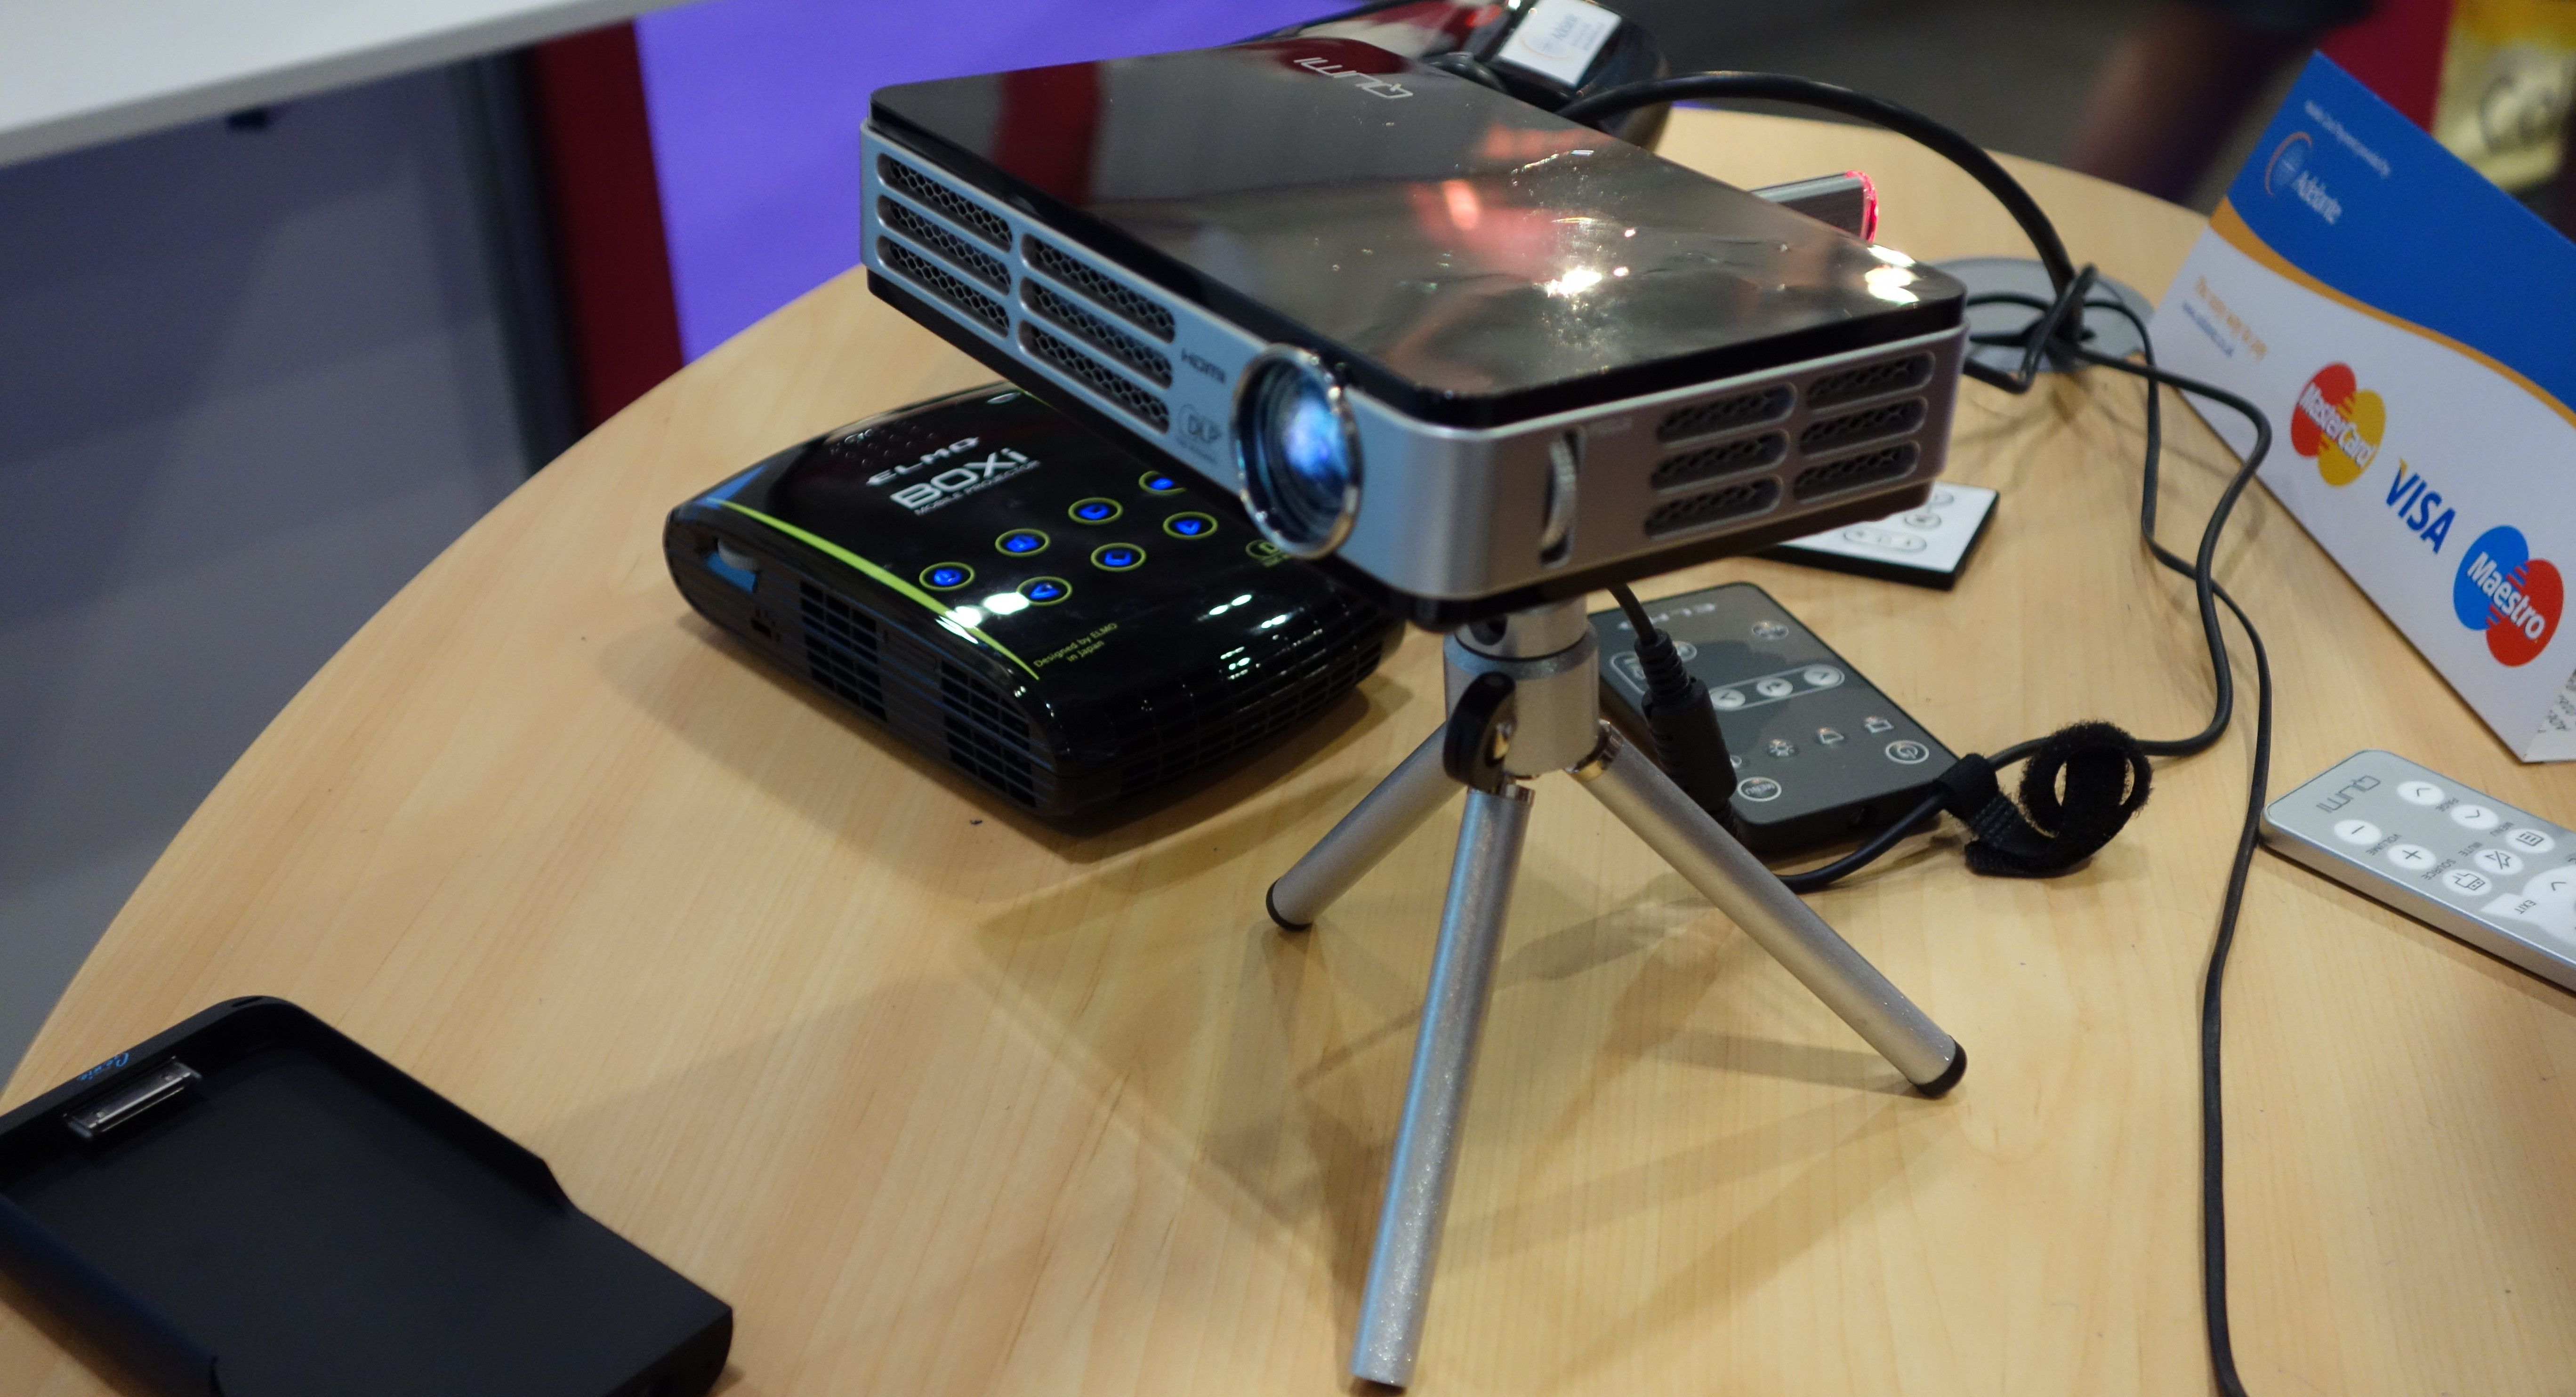 Create a portable classroom with a pico projector